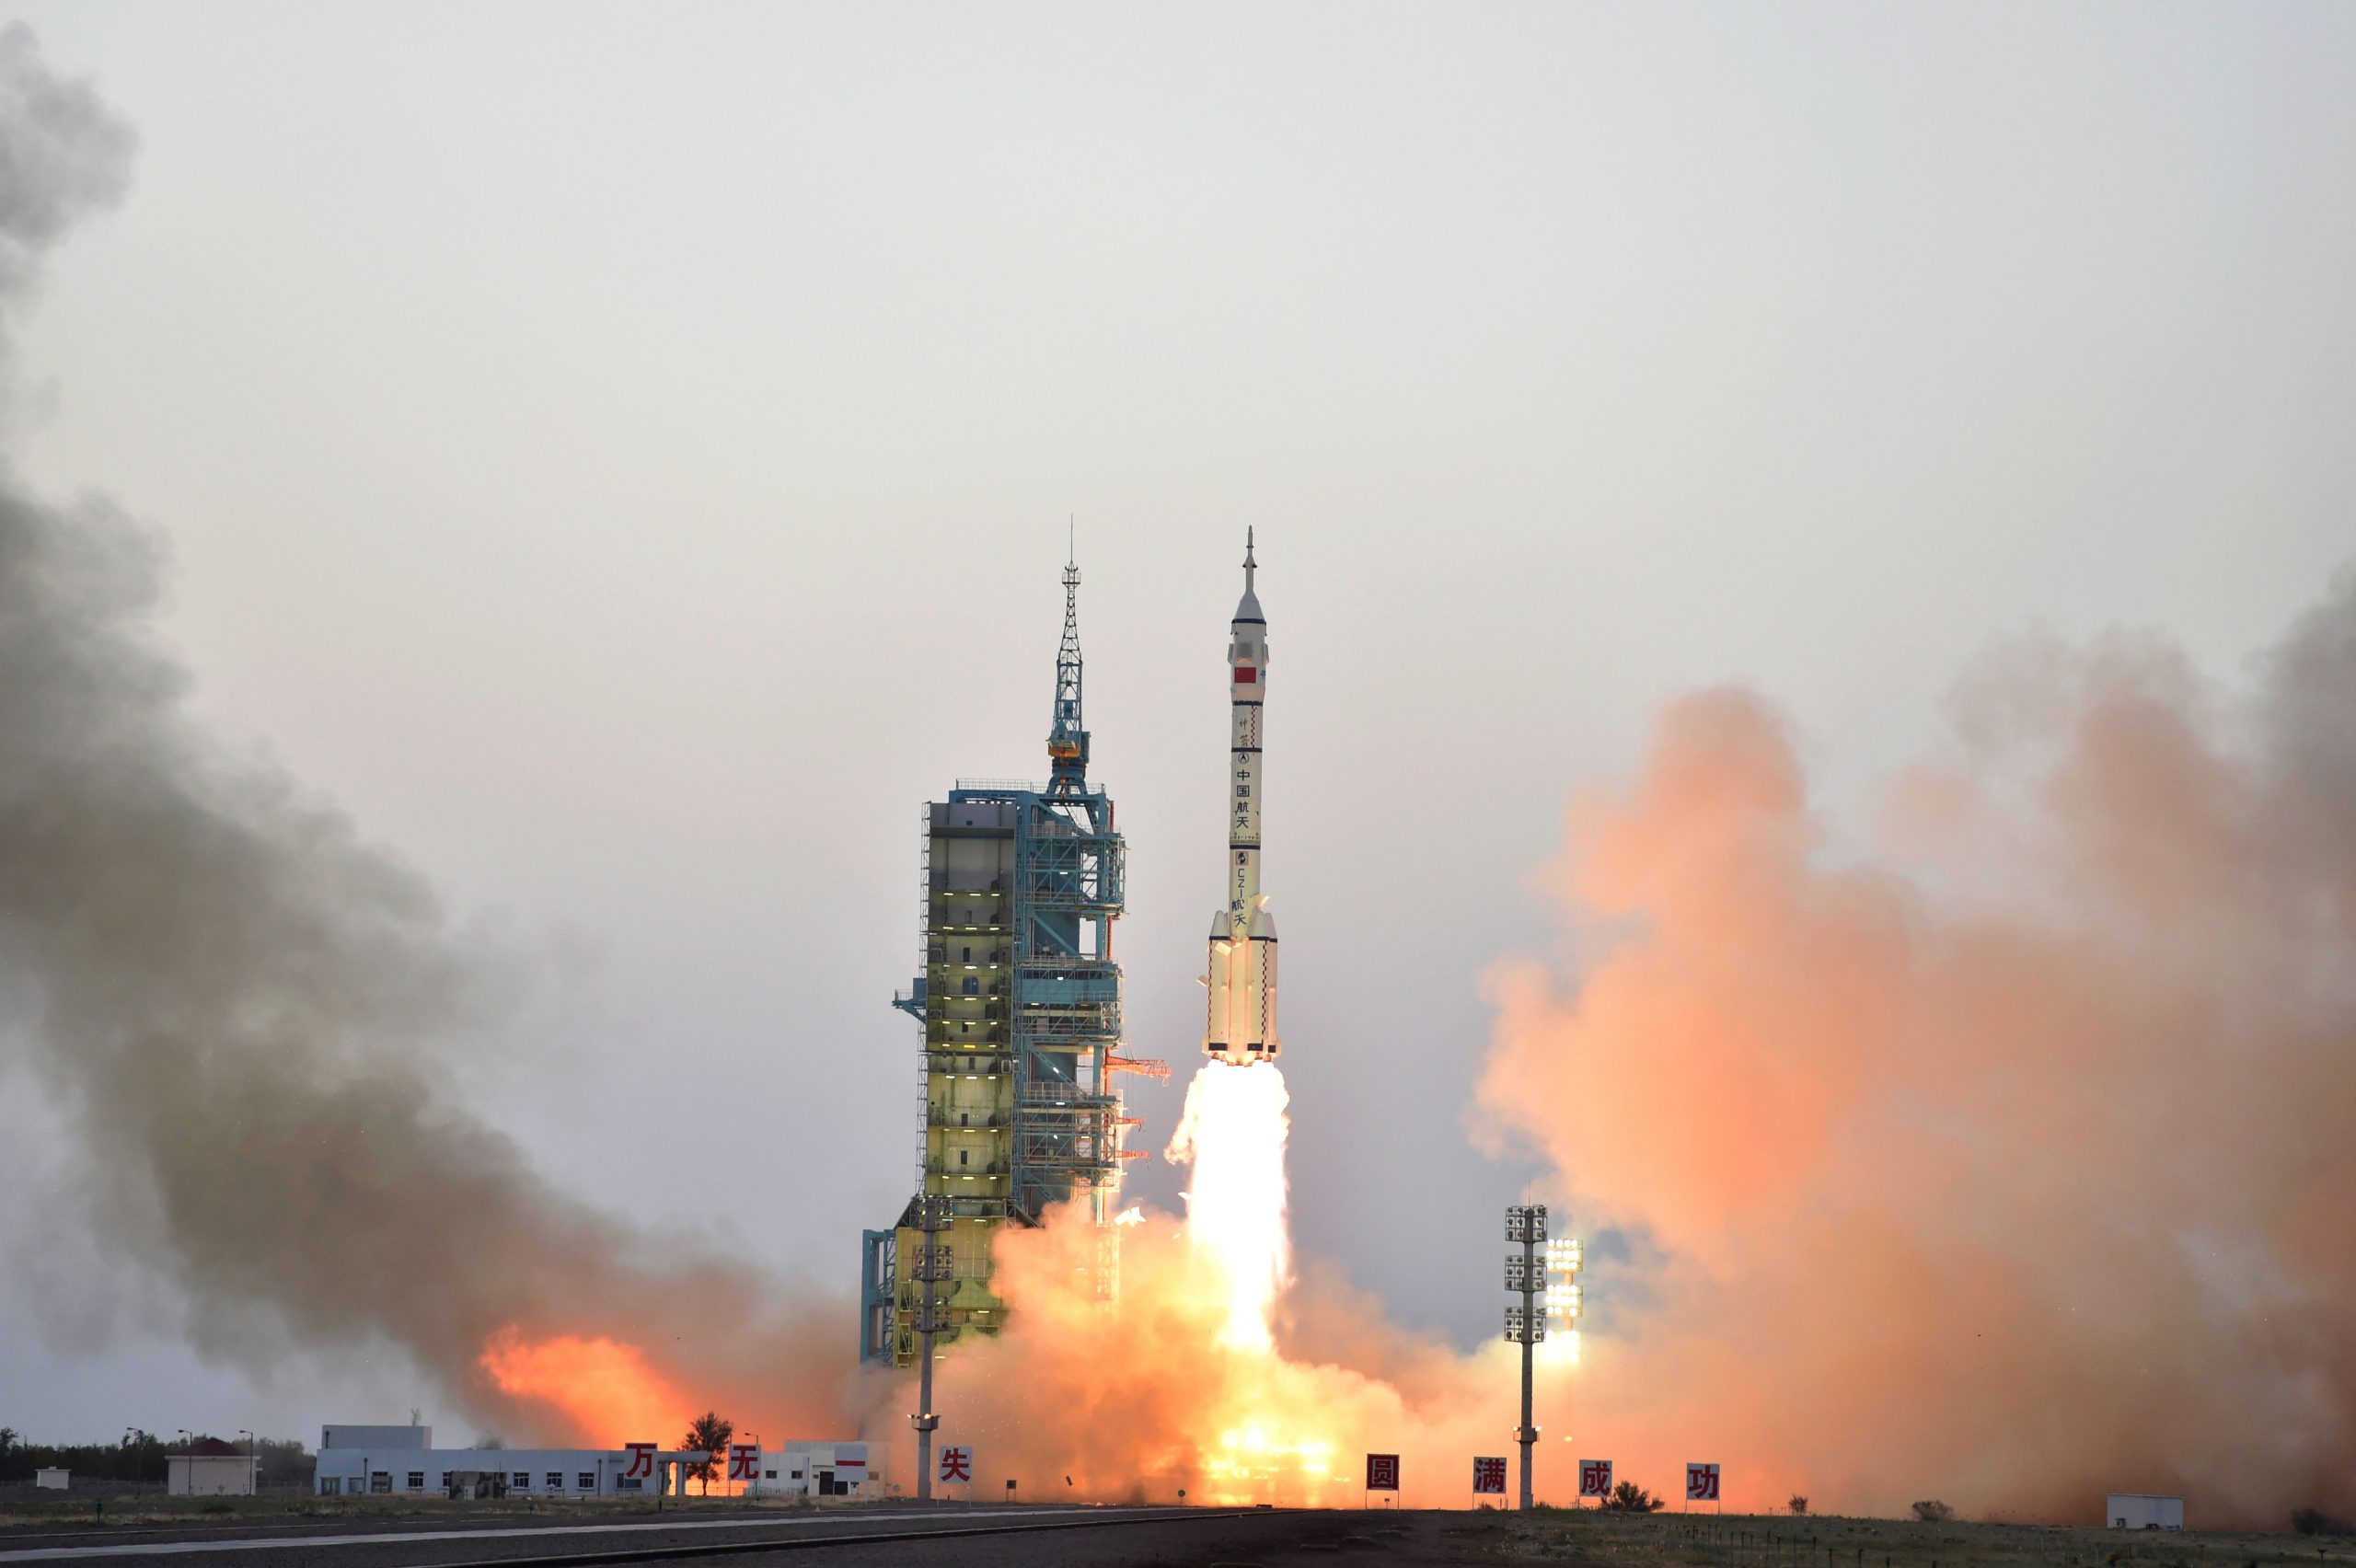 china-lands-its-first-reusable-spacecraft-as-state-media-hails-it-as-an-'important-breakthrough'